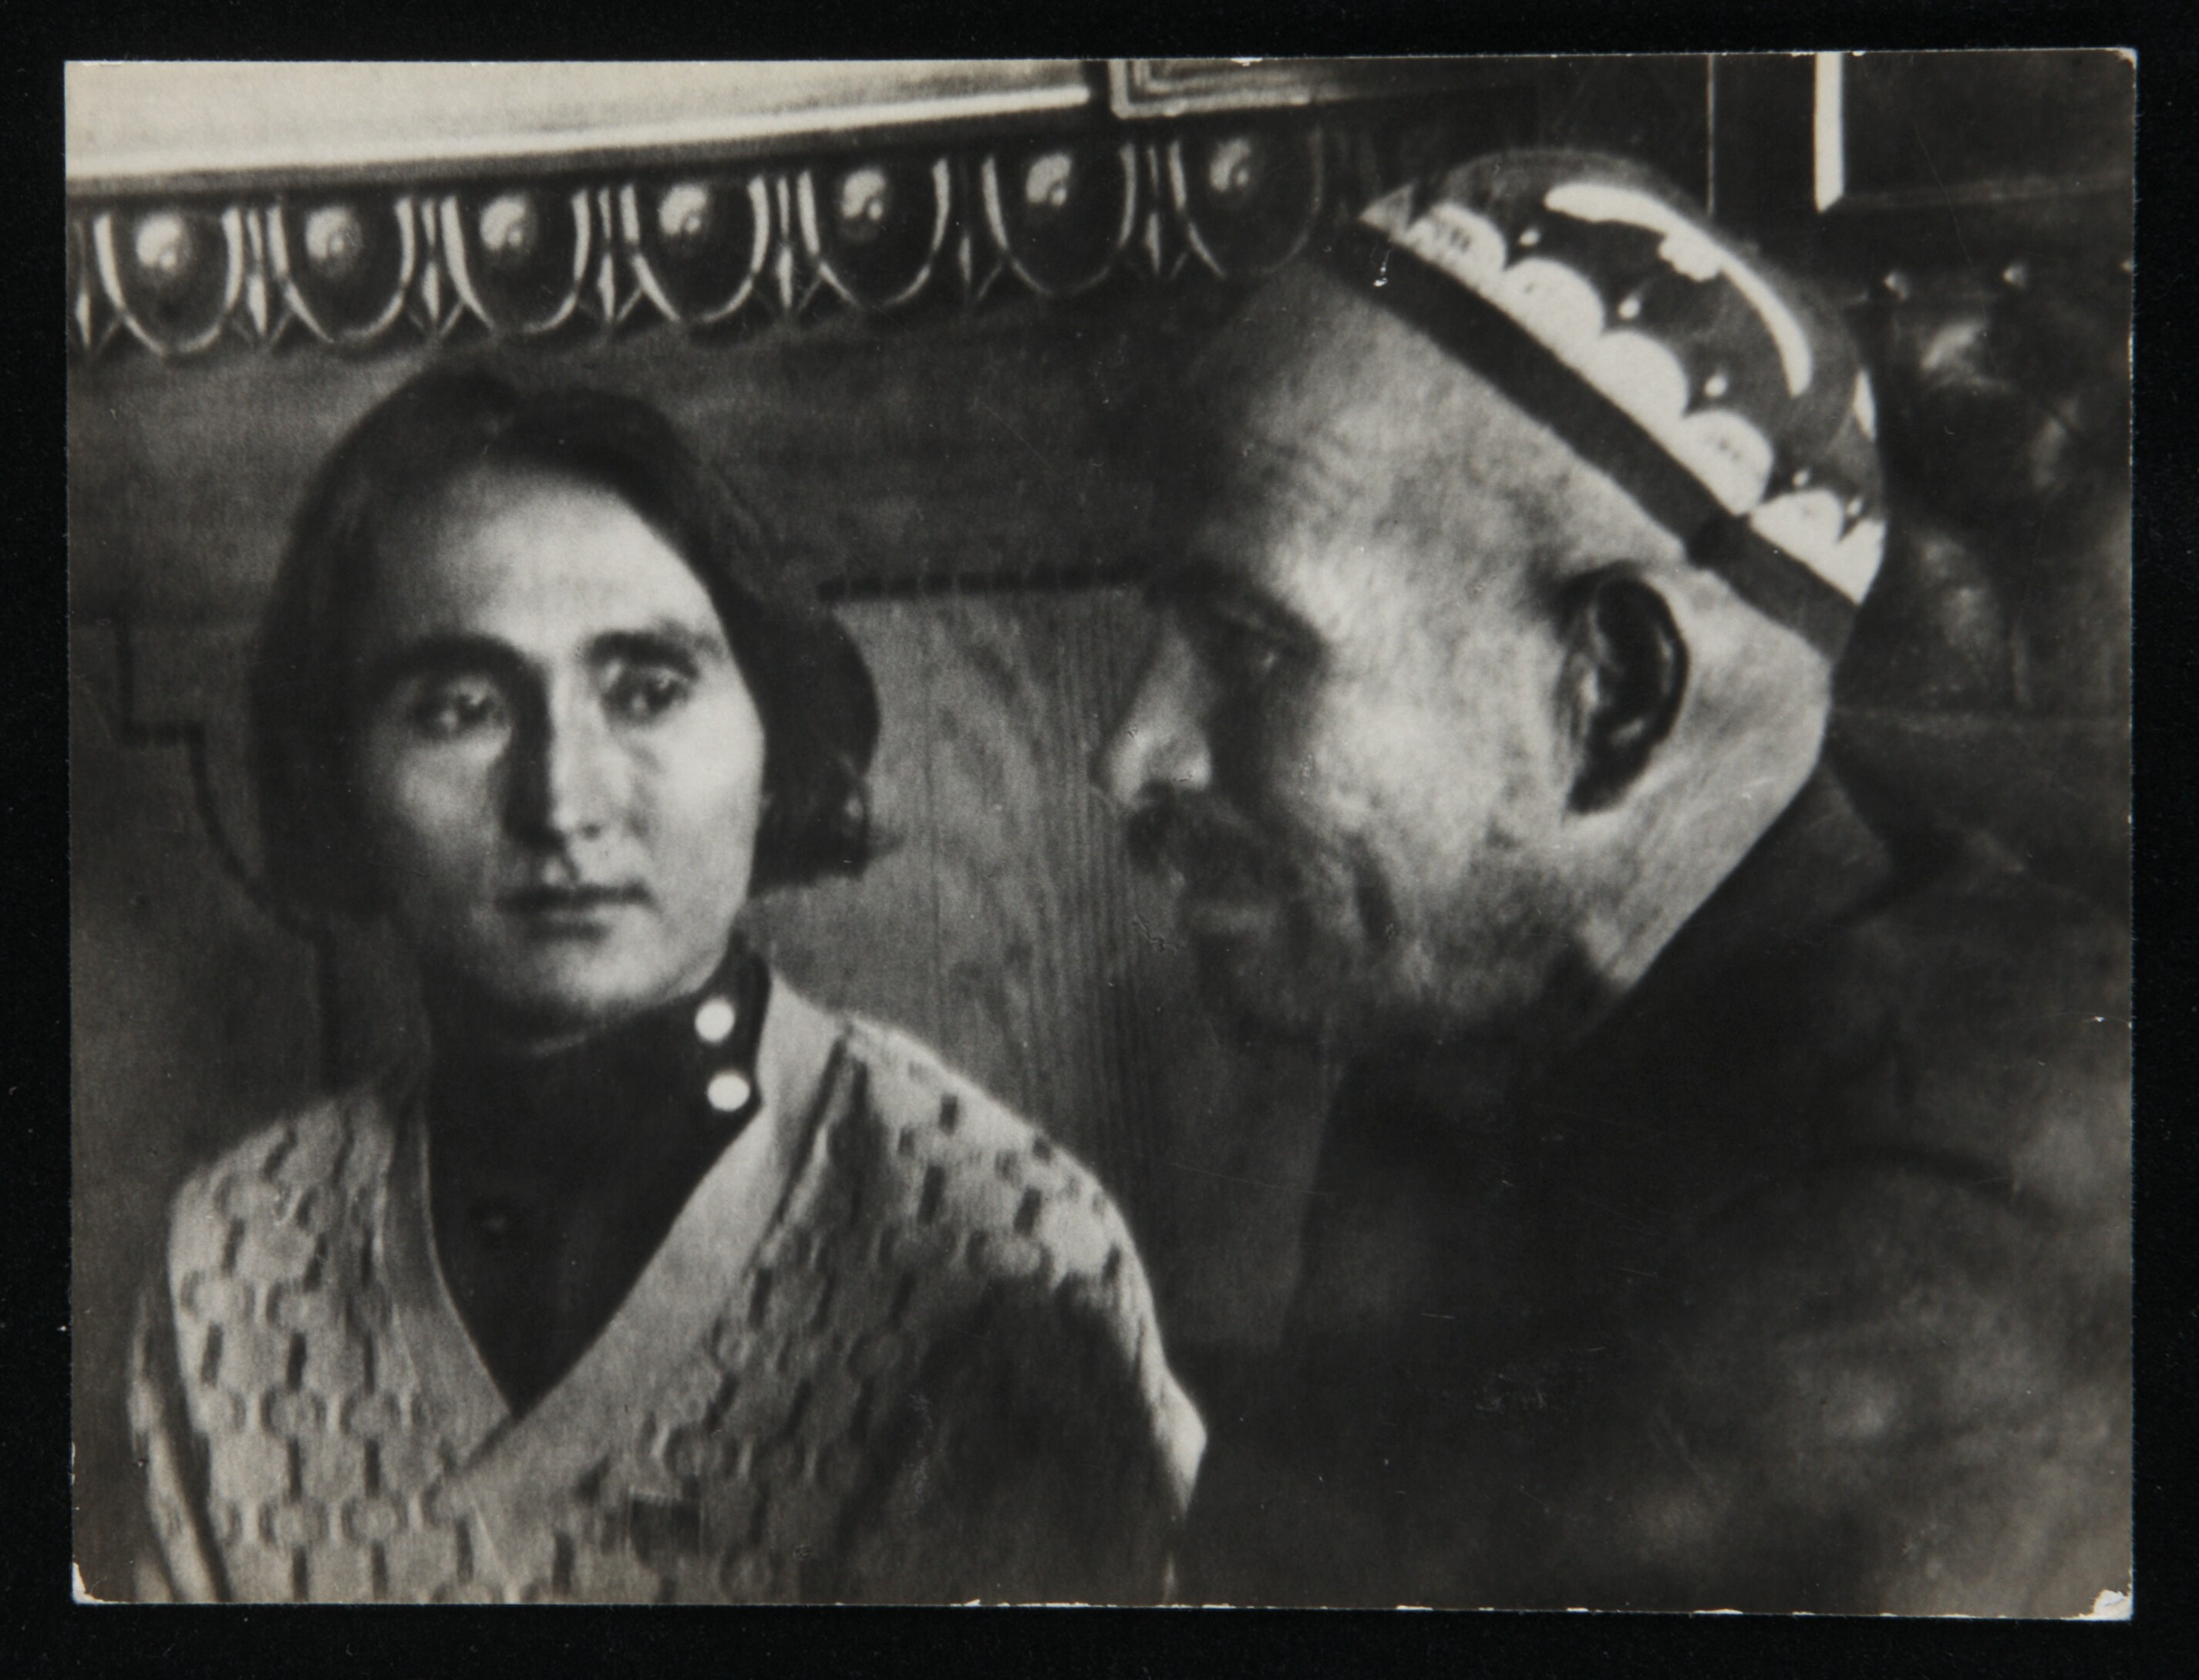 Langston Hughes, President and Vice-President of Uzbekistan, Achun Babaief (right) and Jahan Abinova (left). The President was formerly a plowman; Jahan Abinova, an inmate of a harem. (Soviet Central Asia)